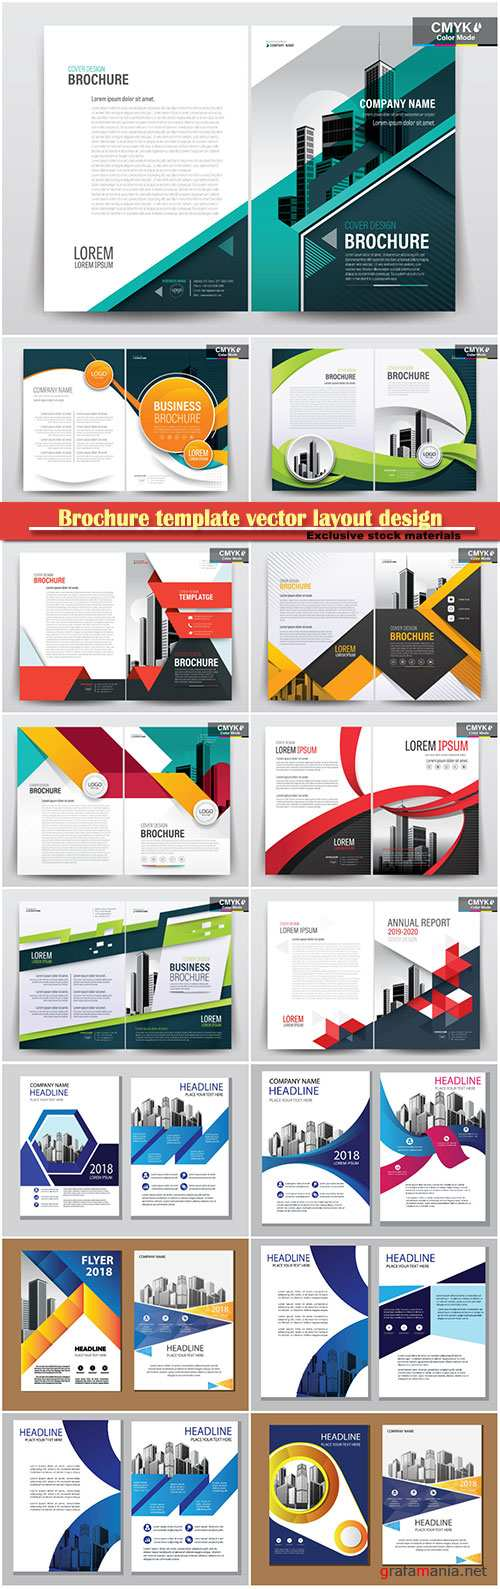 Brochure template vector layout design, corporate business annual report, magazine, flyer mockup # 151